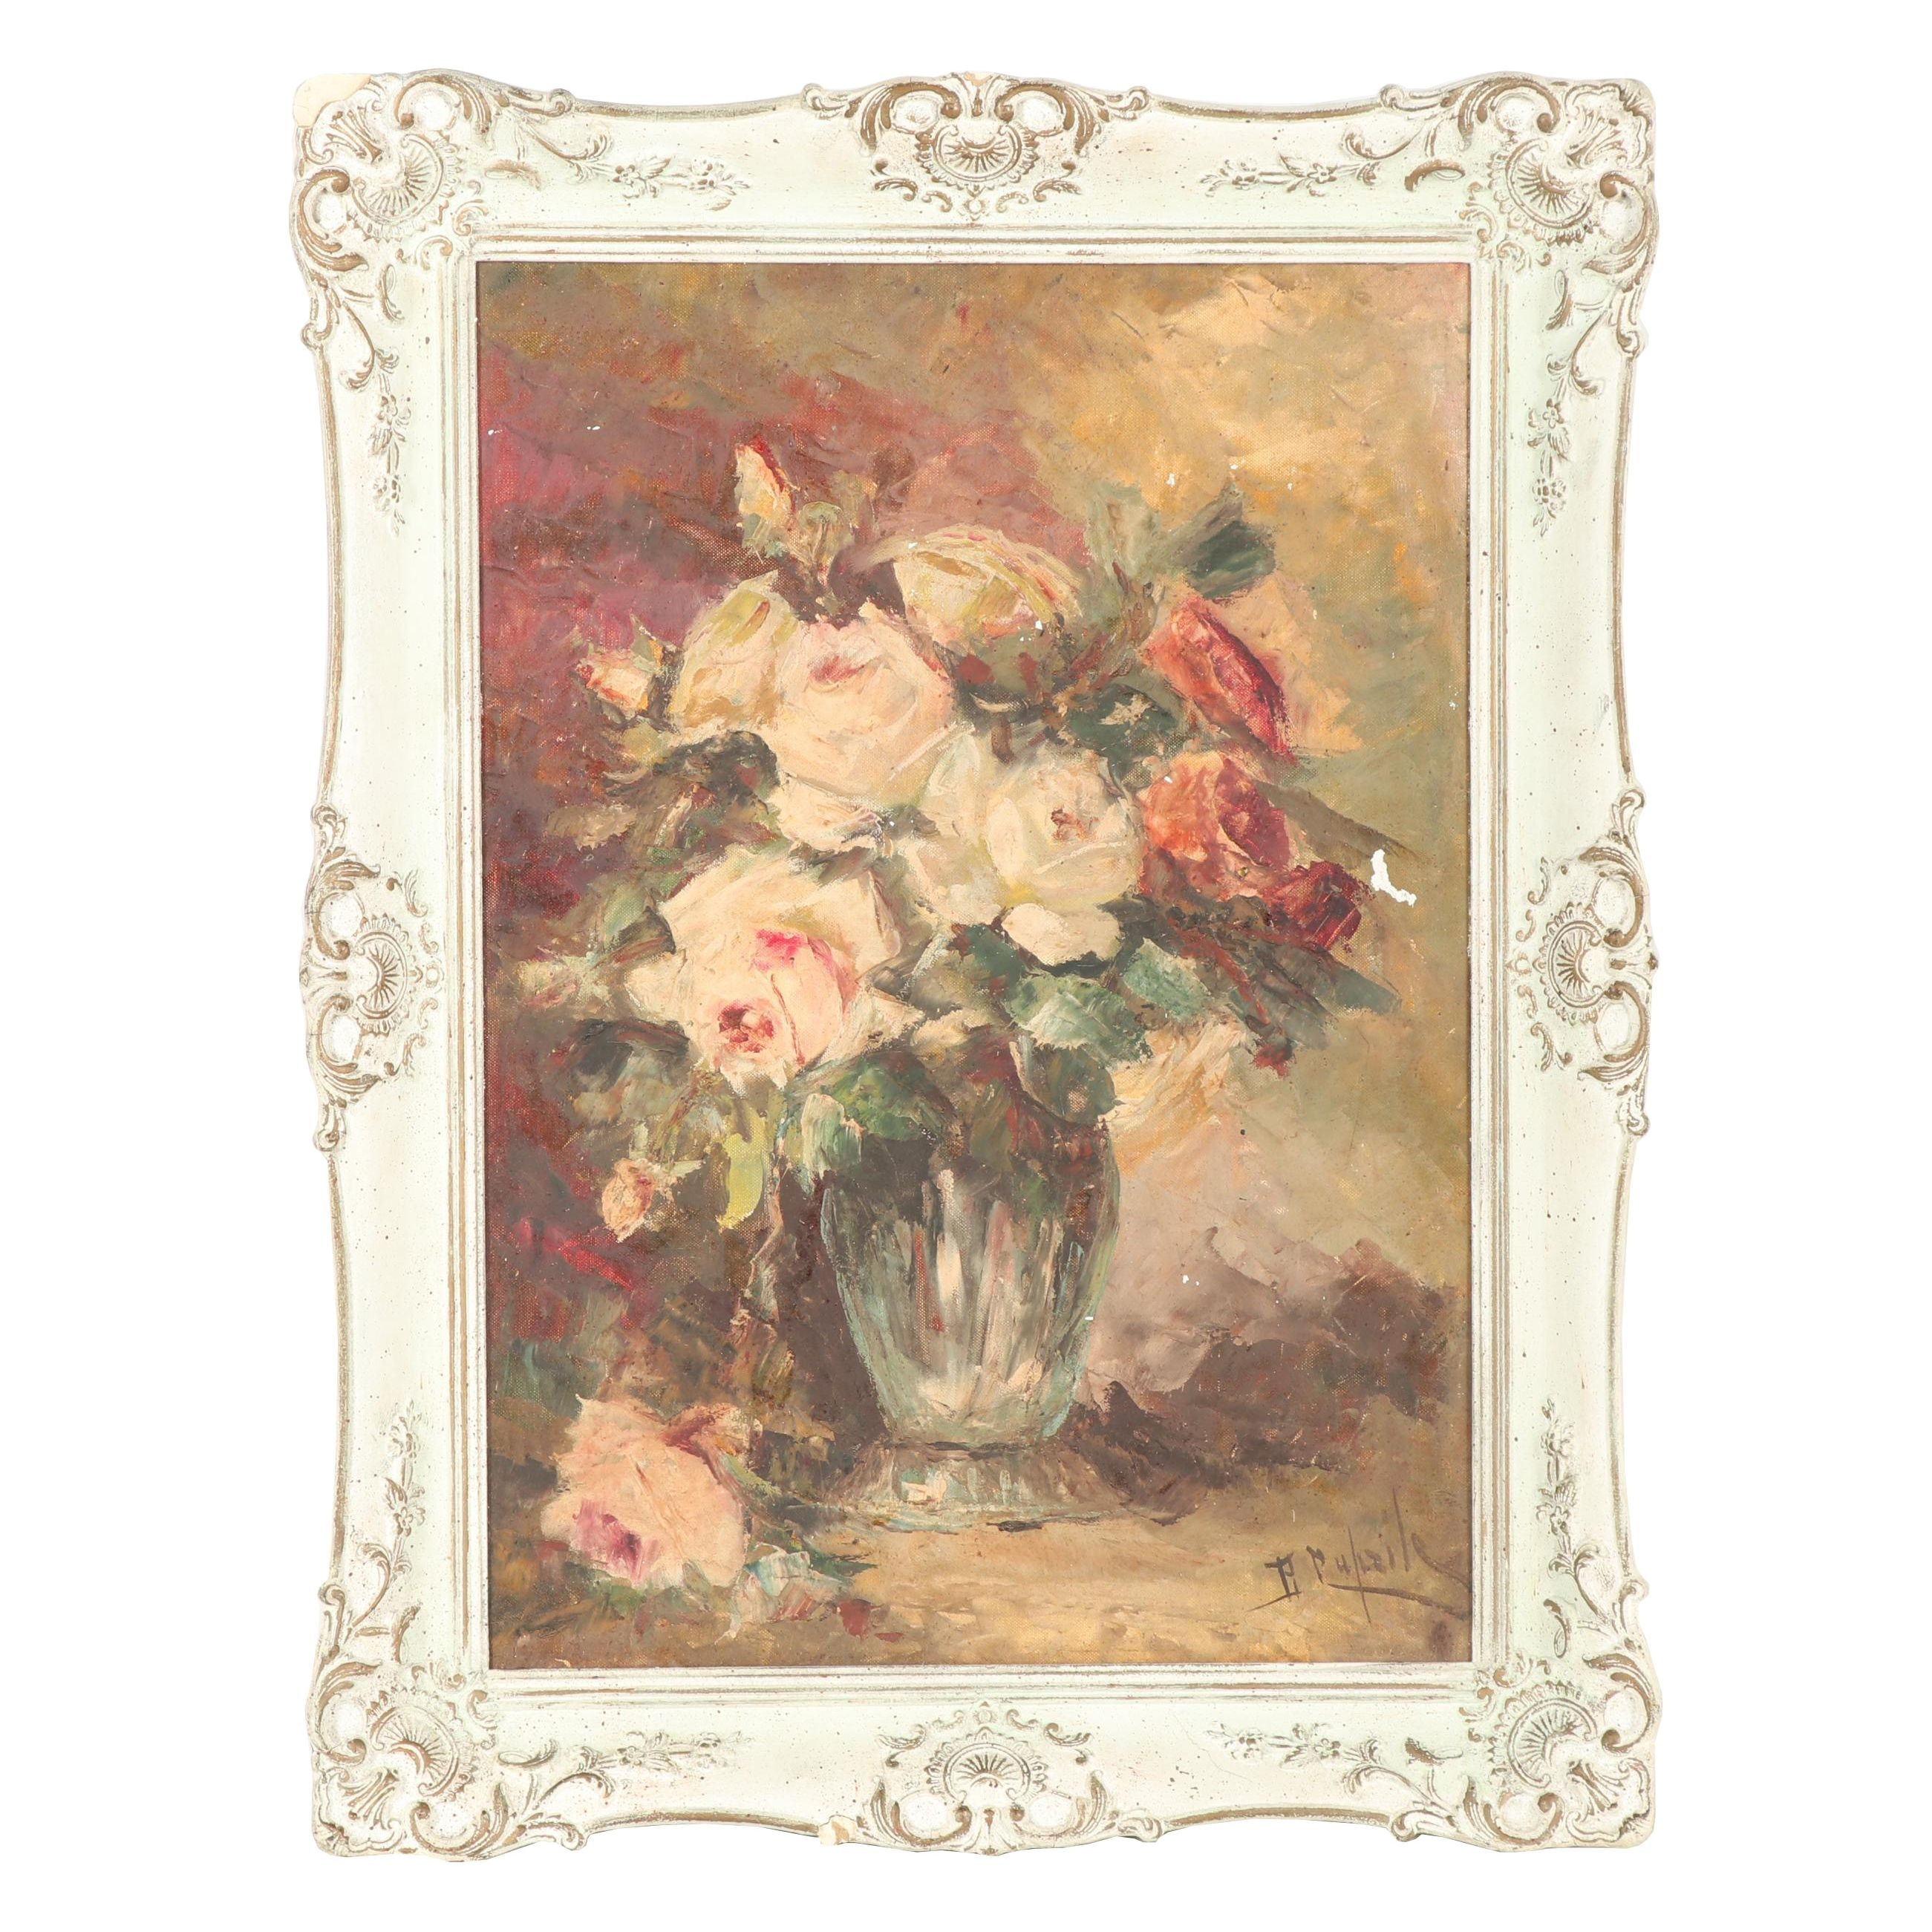 Early-Mid 20th Century Floral Still Life Oil Painting